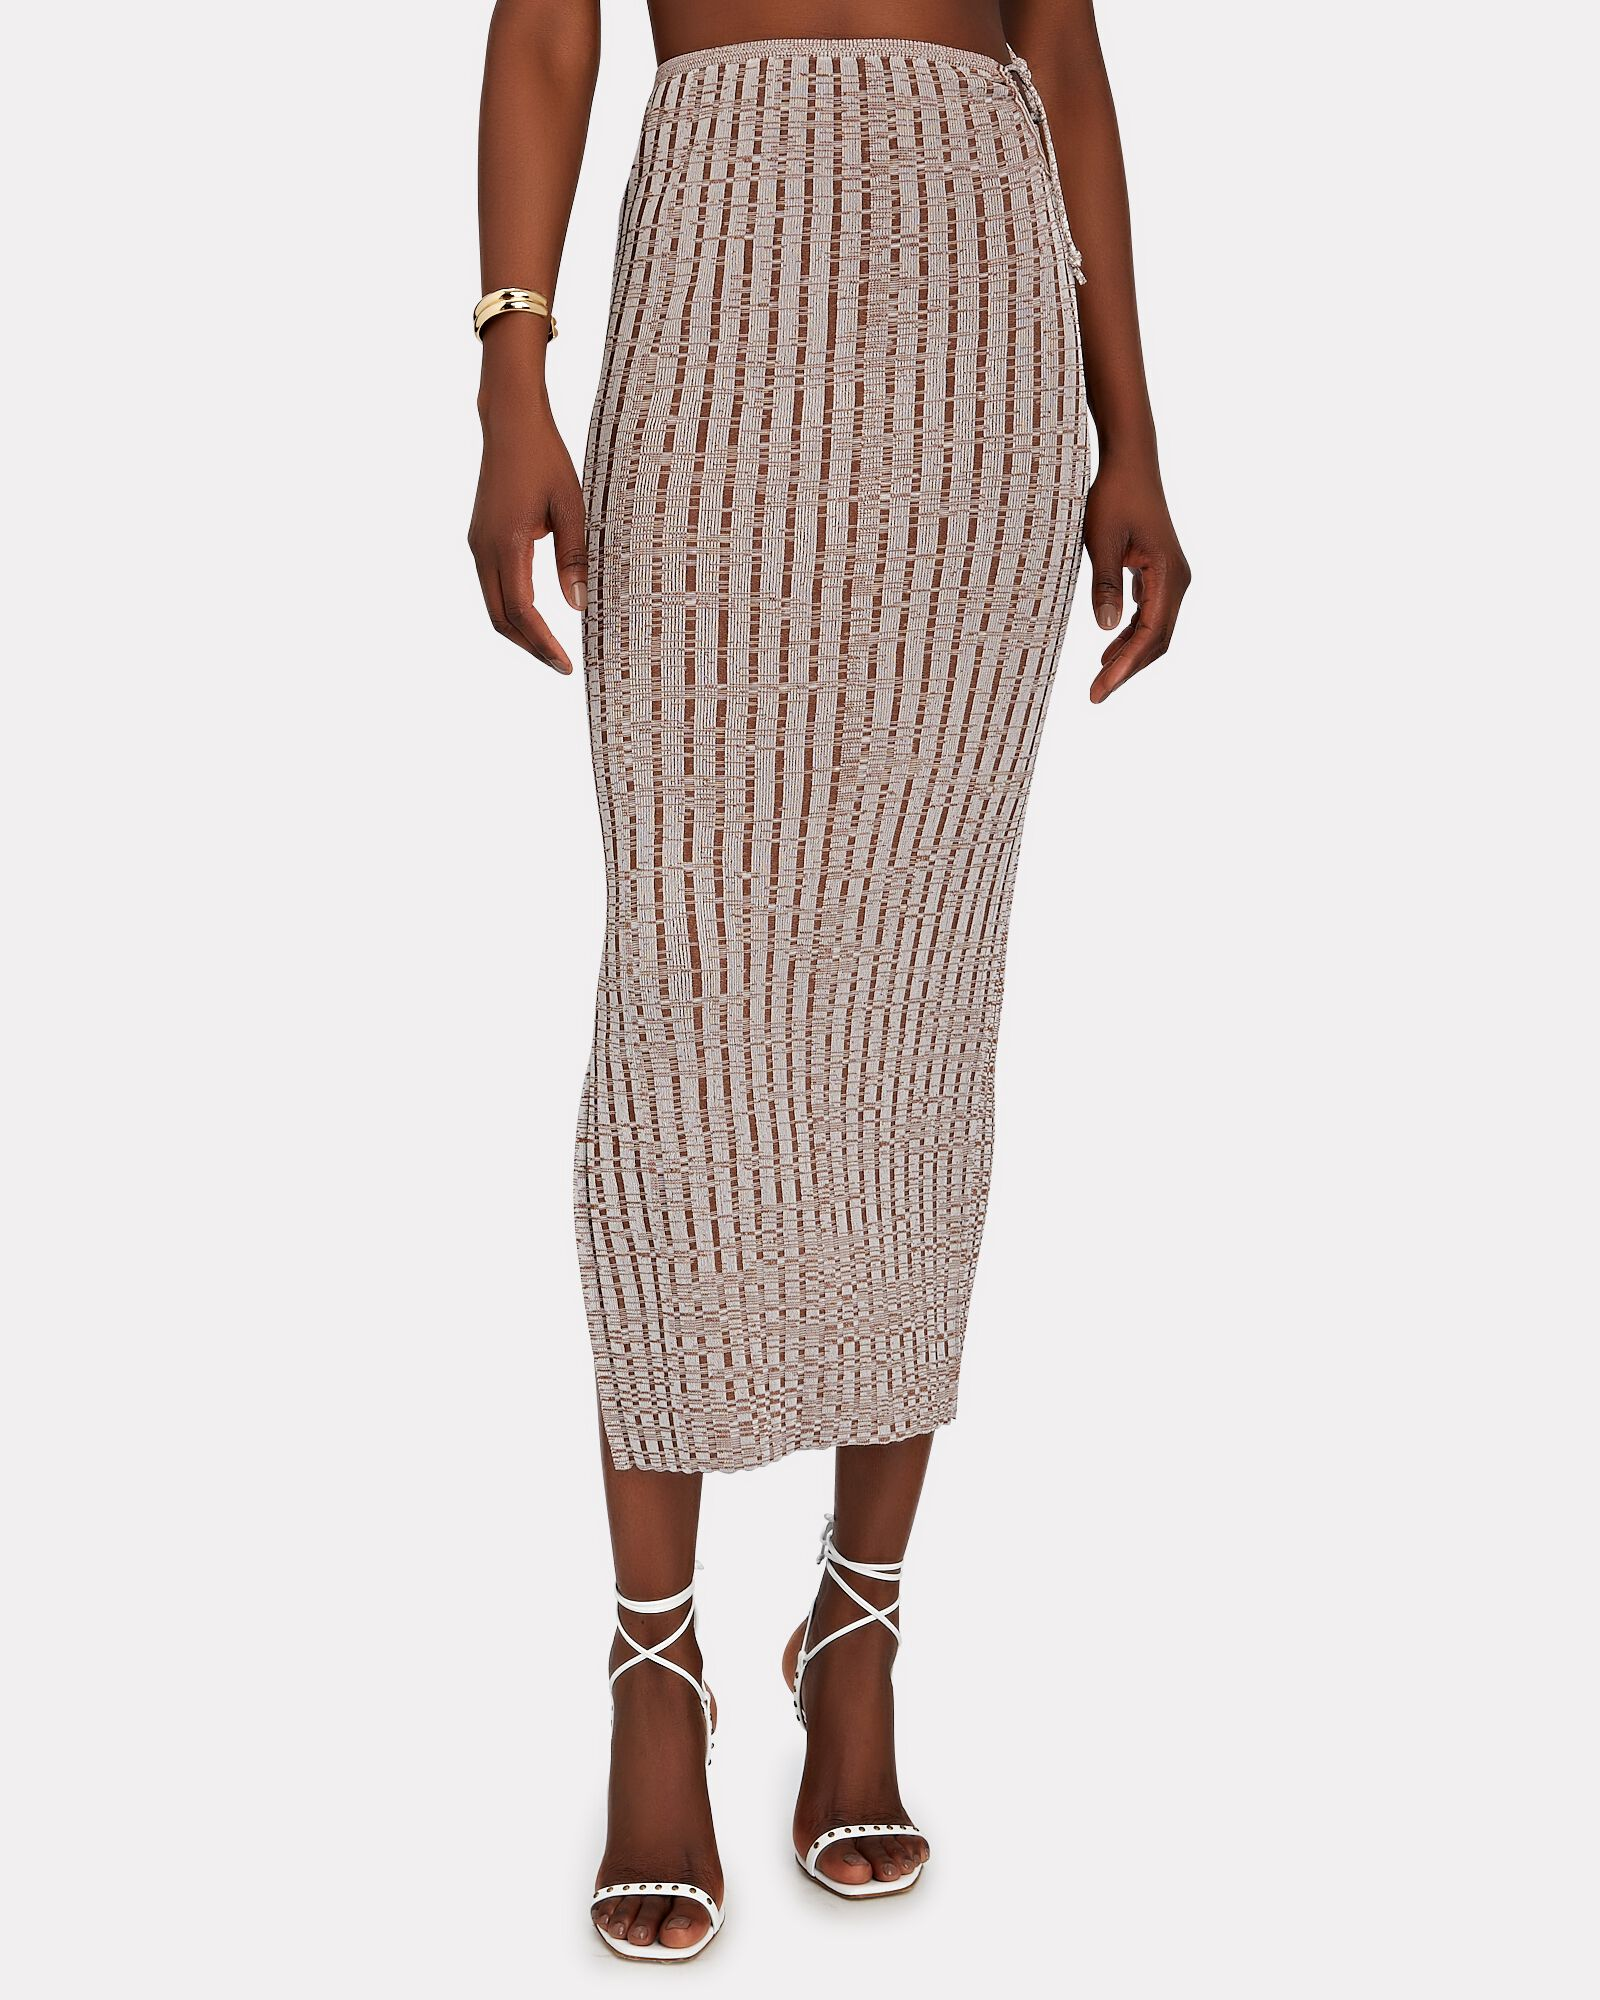 Emerald Space Dyed Knit Midi Skirt, BEIGE, hi-res